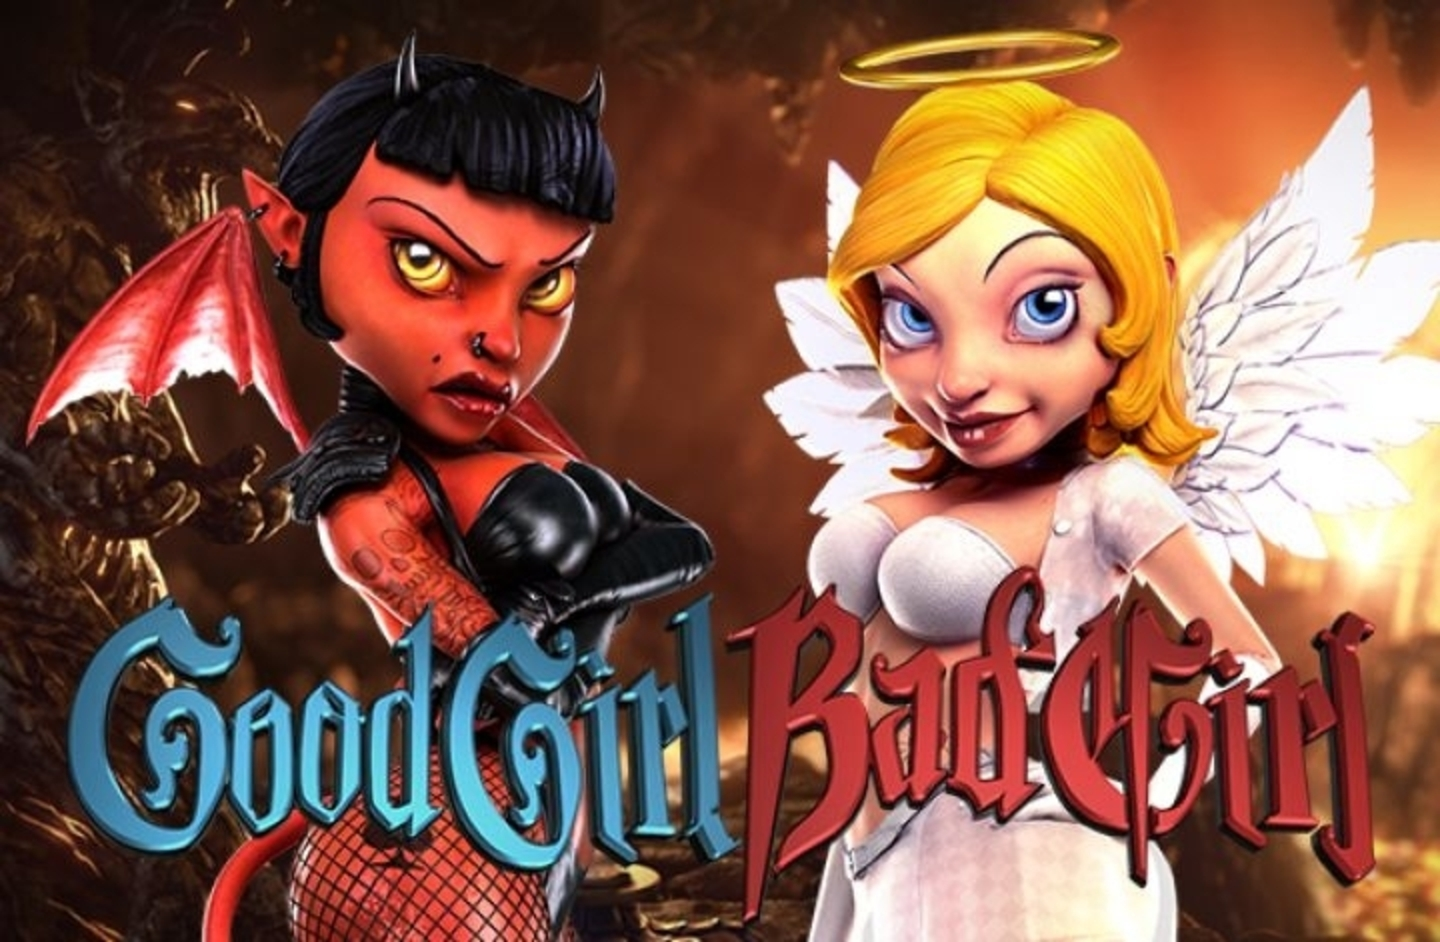 The Good Girl Bad Girl Online Slot Demo Game by Betsoft